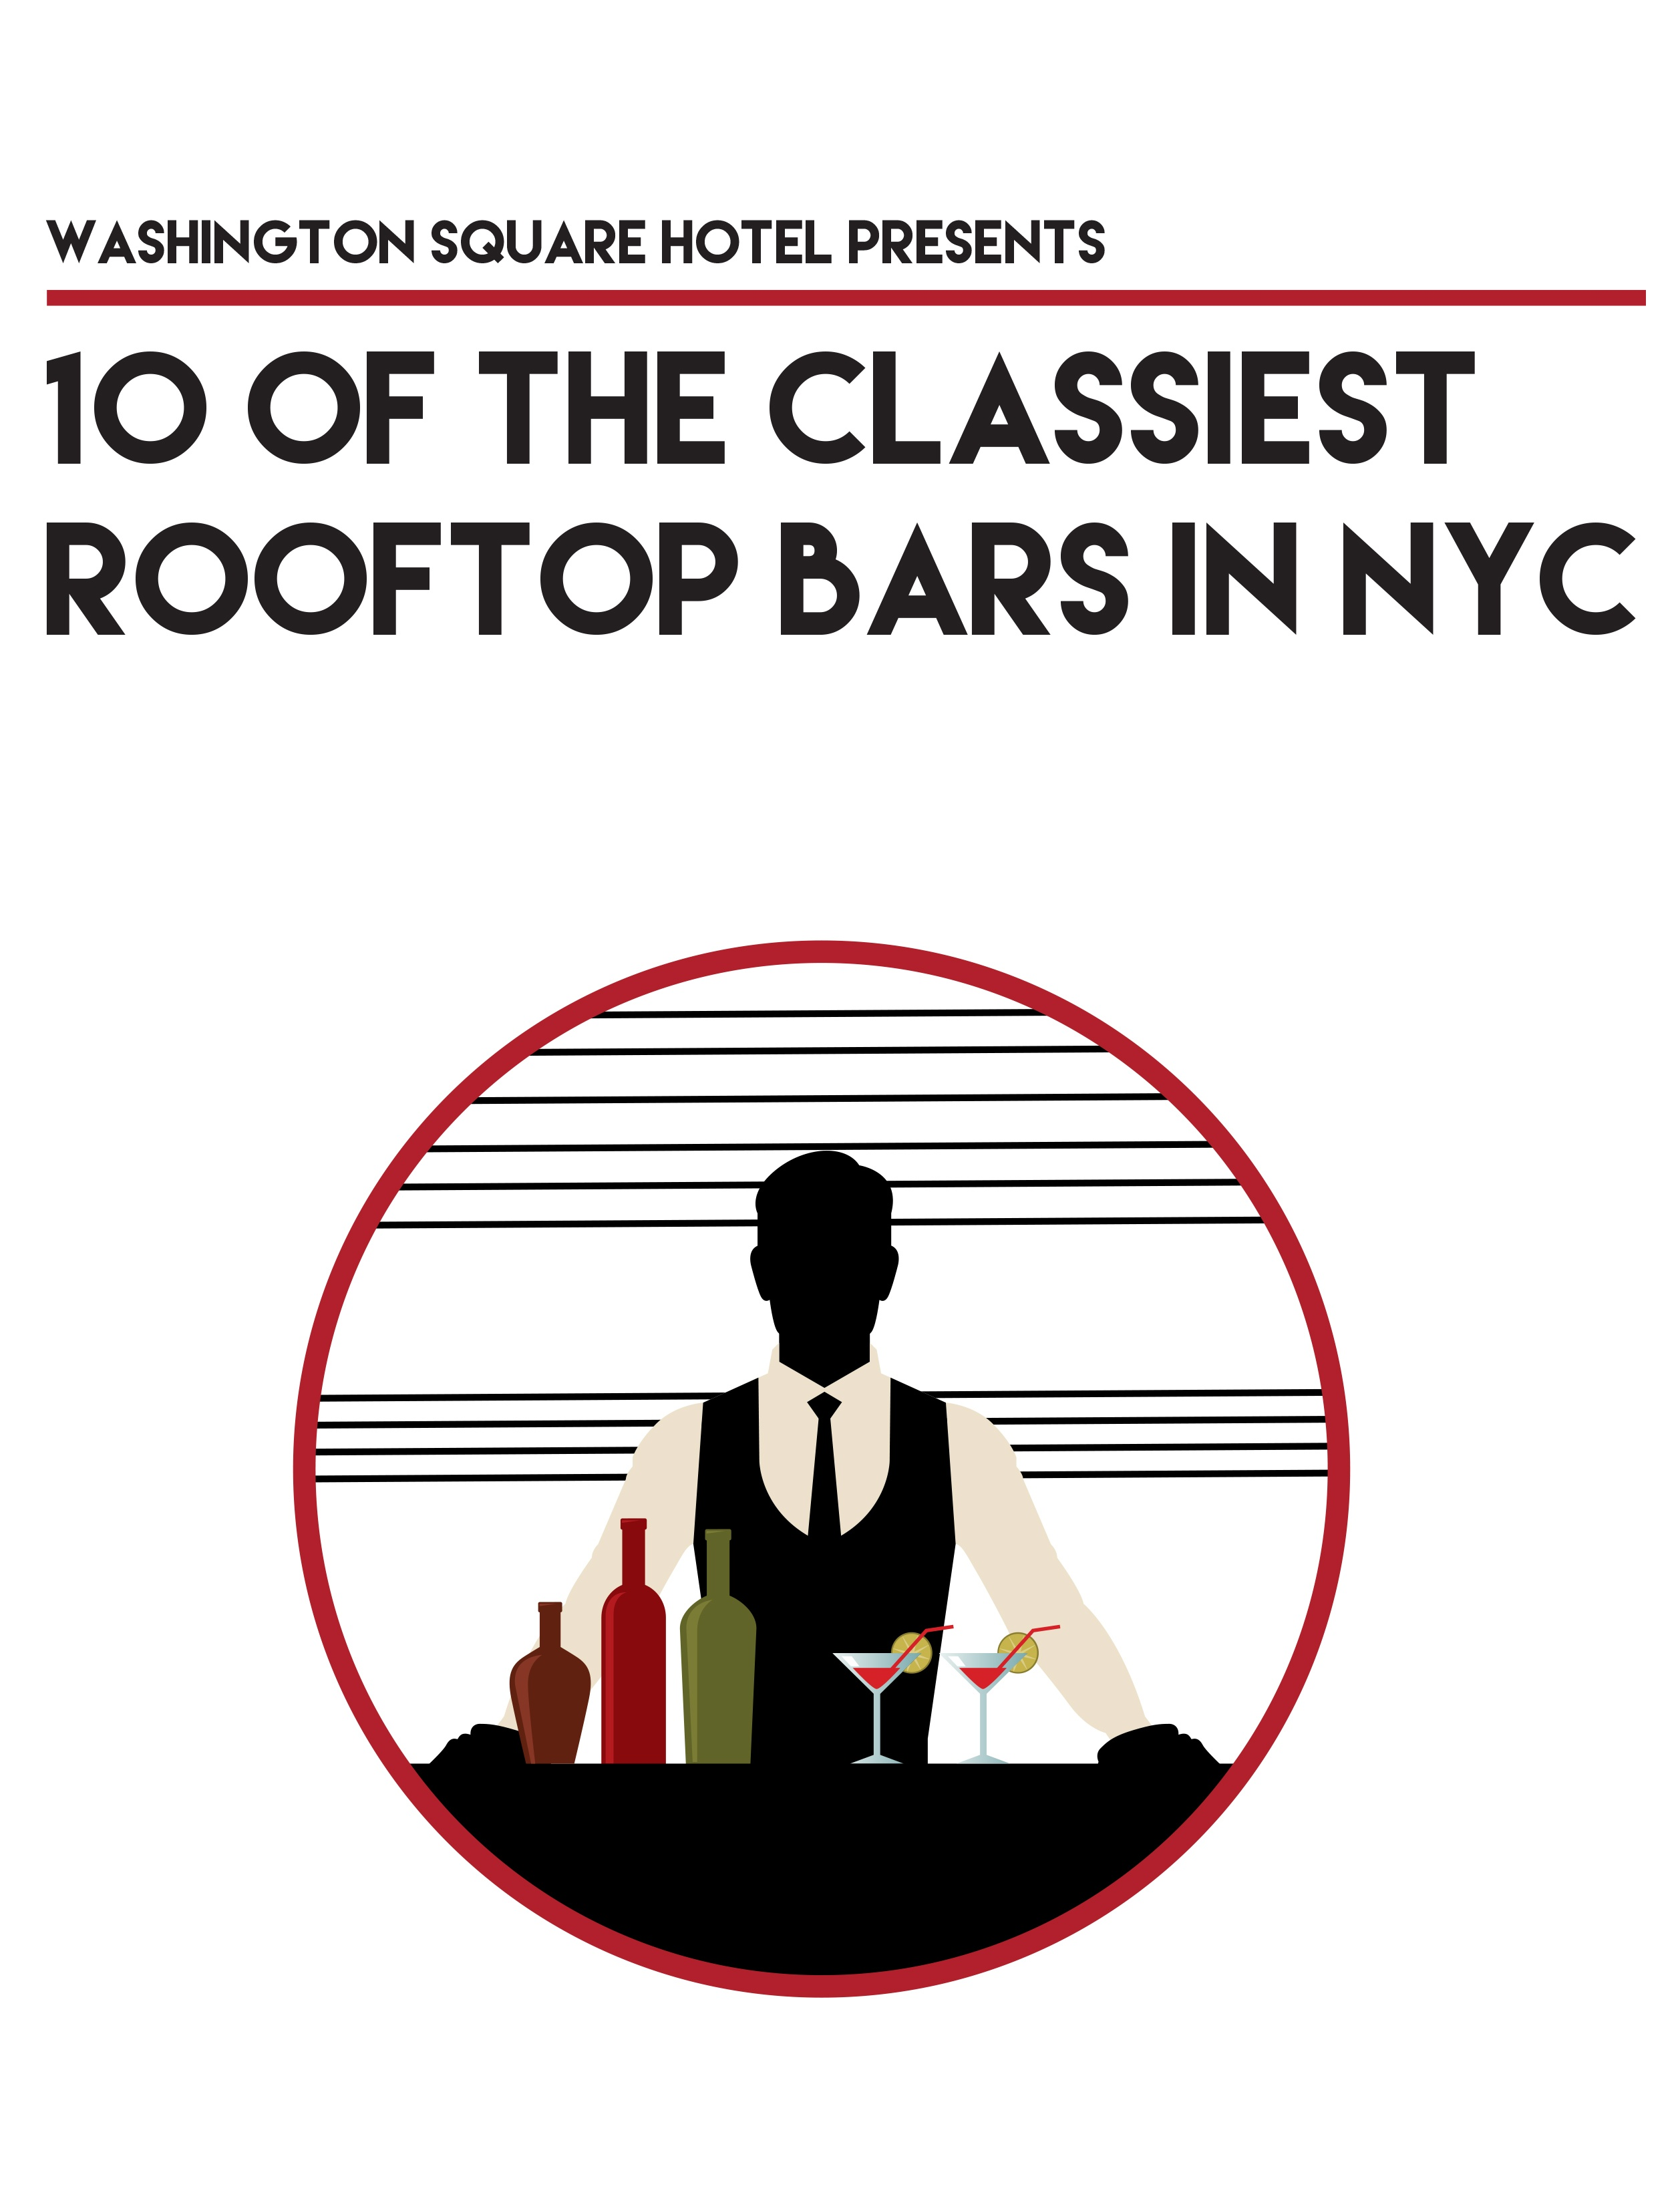 Classy-Rooftop-Bars-Cover.jpg